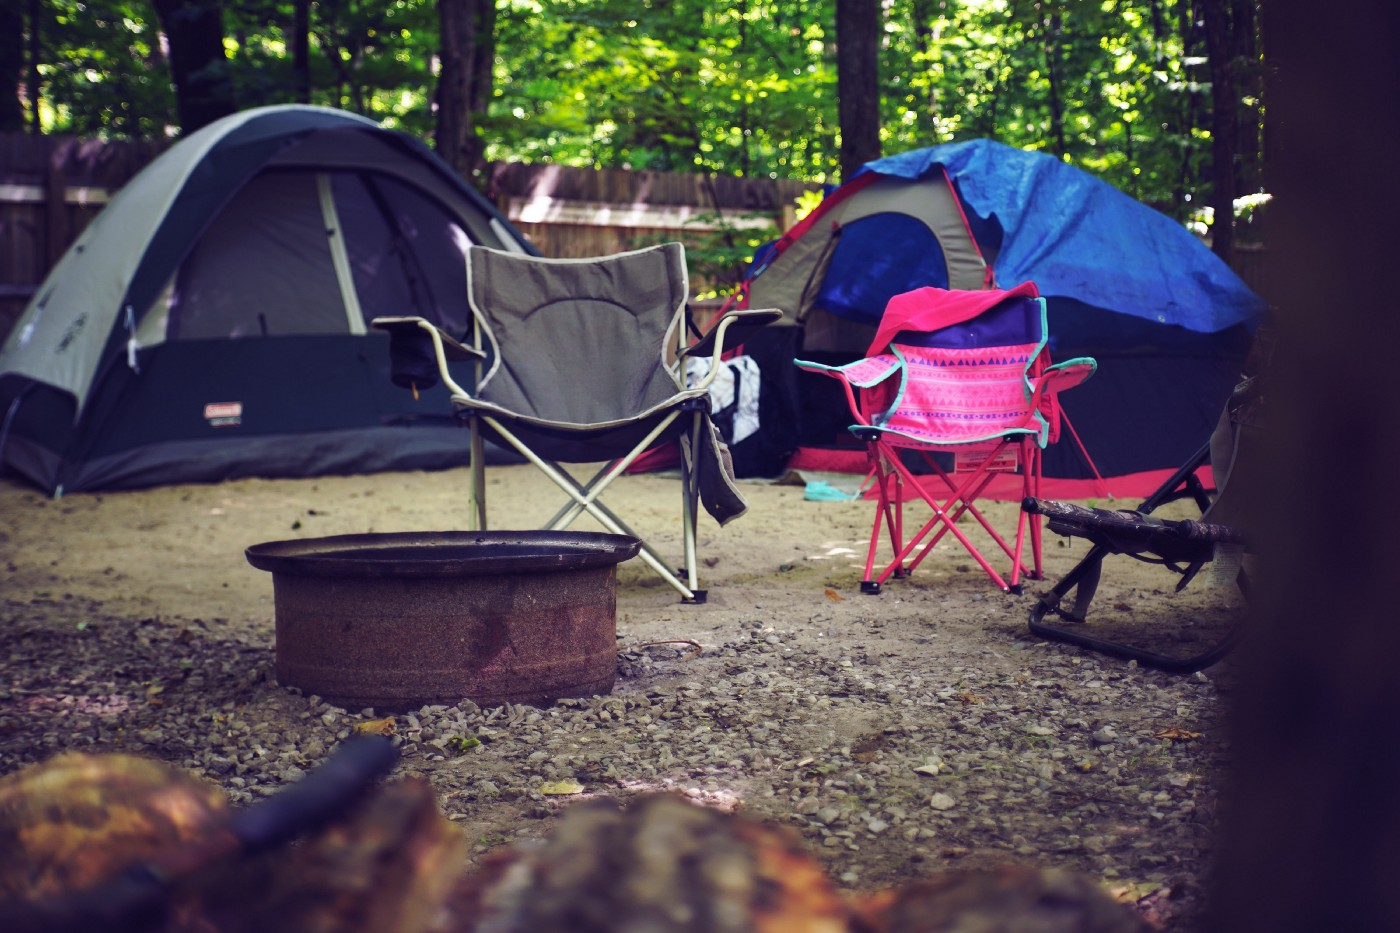 A camping ground set up with tents and chairs with a fire pit in the middle.